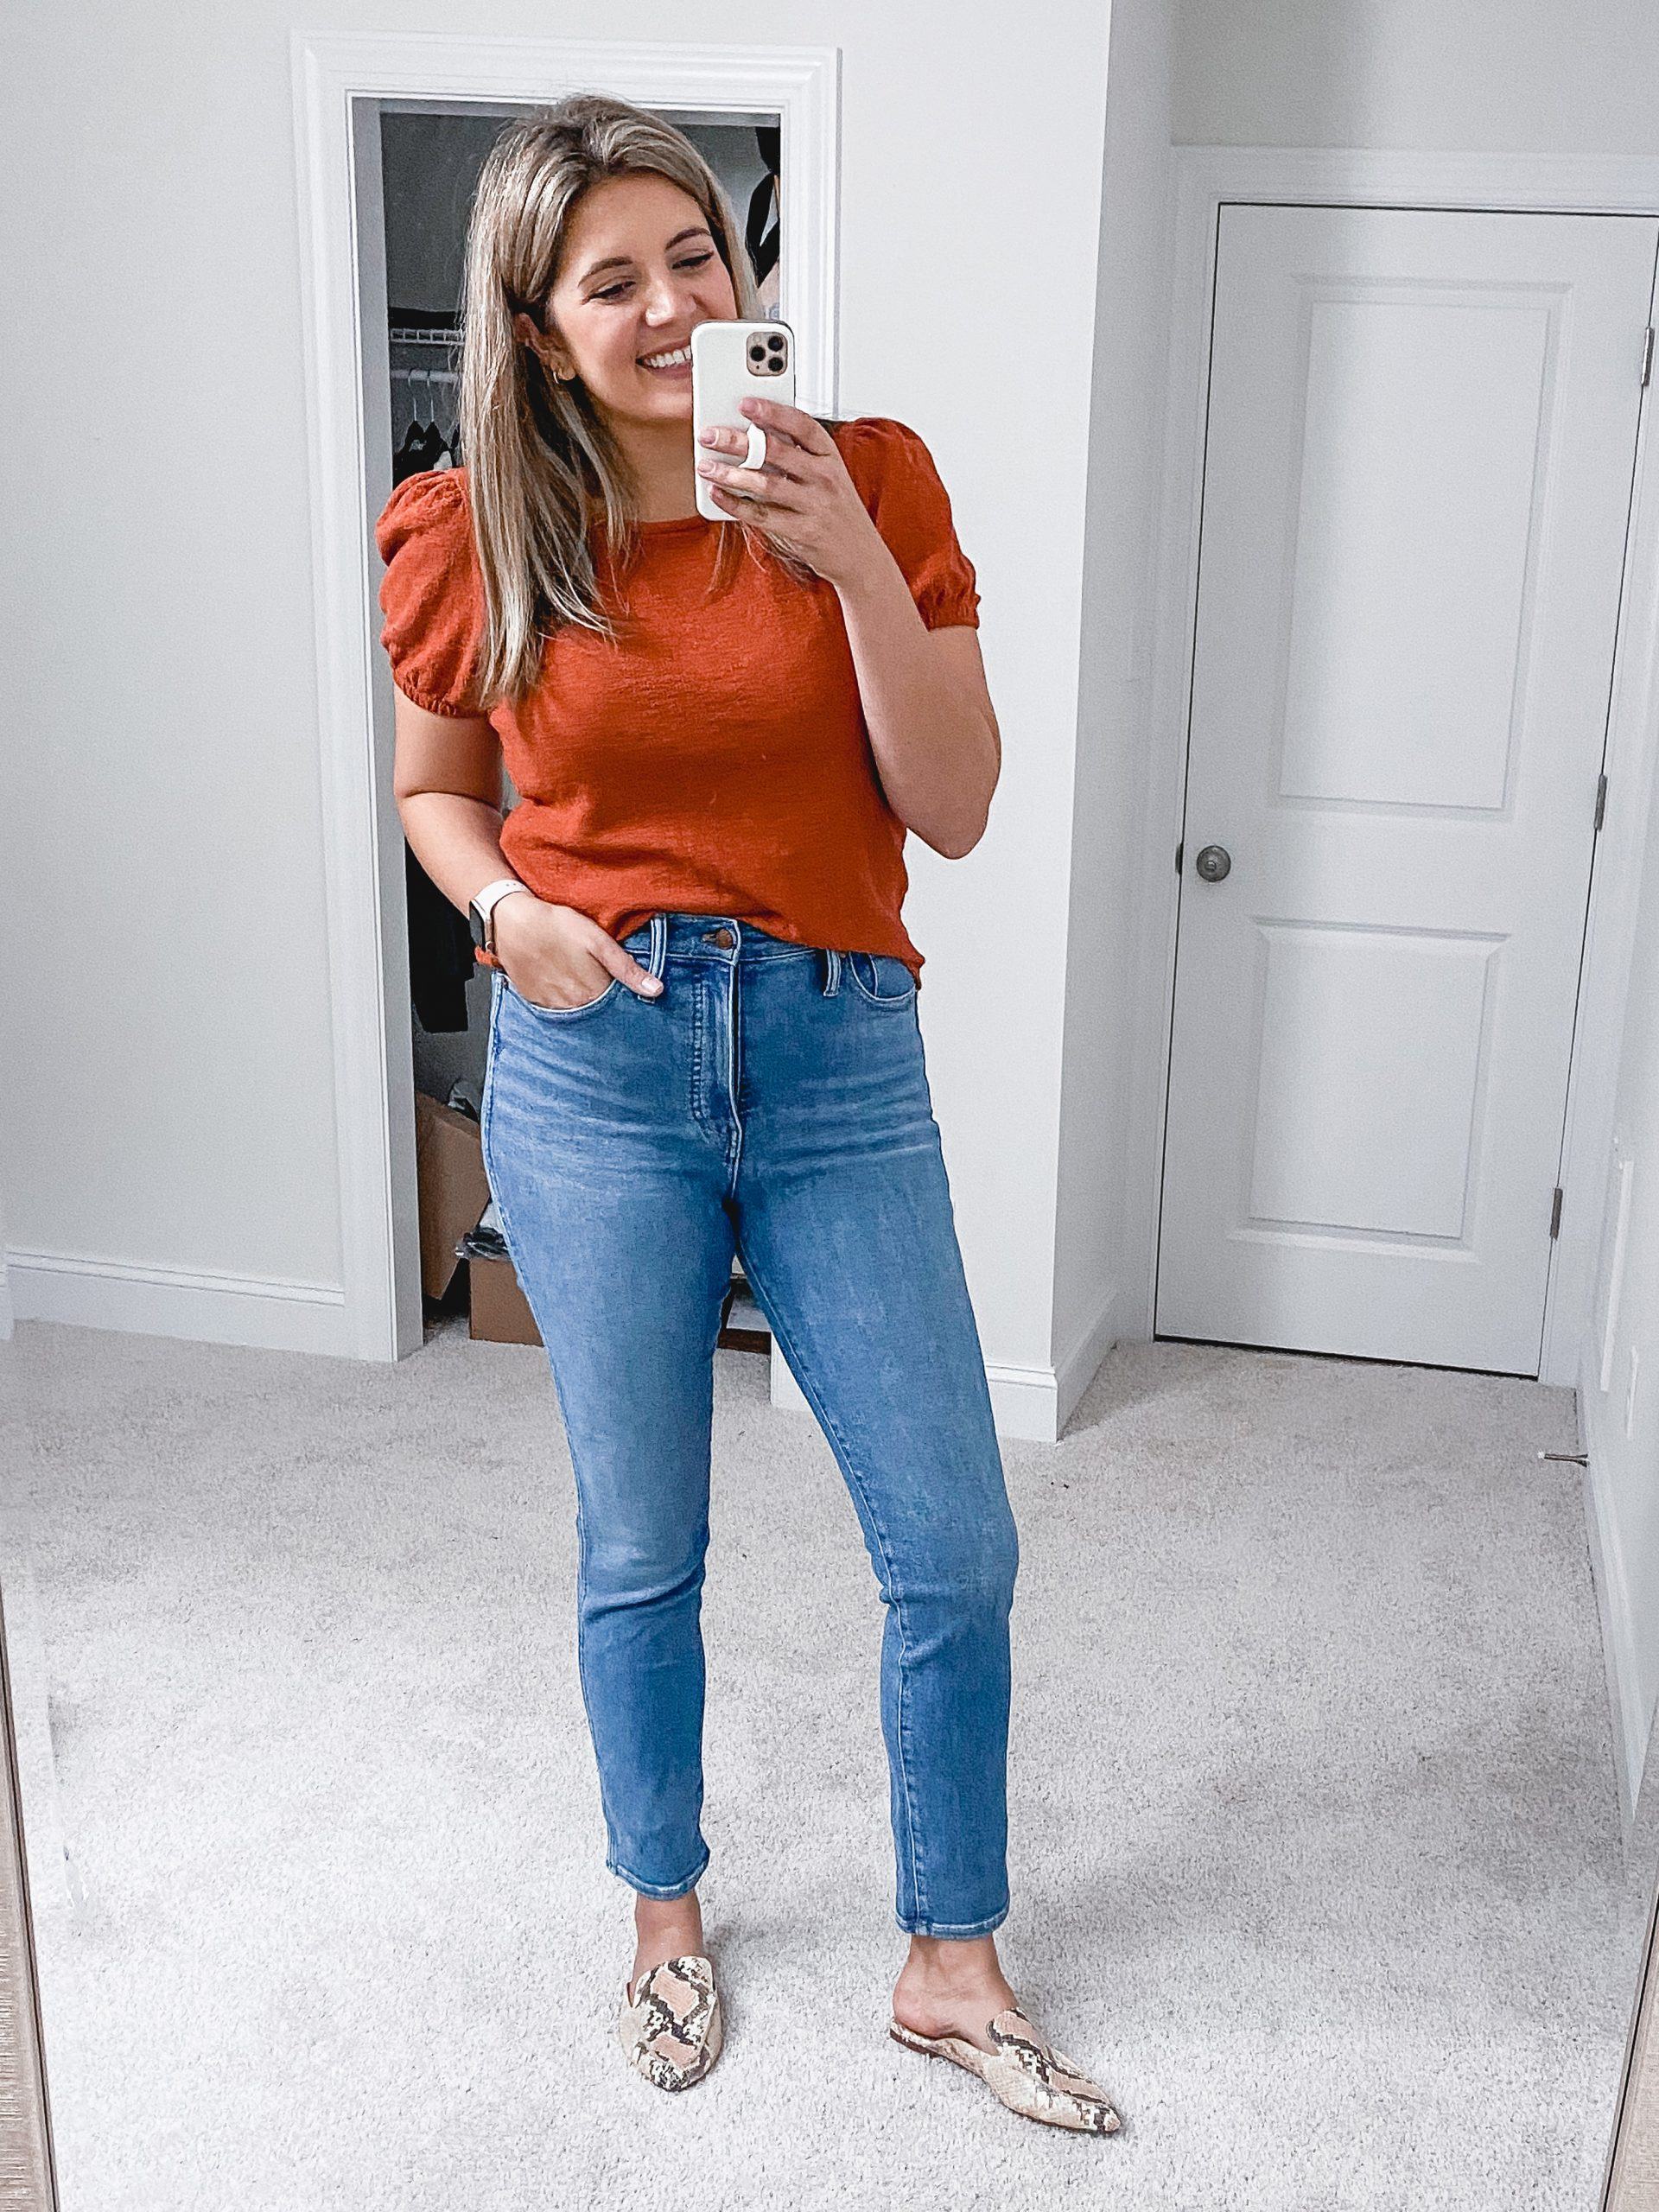 Virginia blogger, Lauren Dix, shares over 10 new Madewell fall arrivals in her fall Madewell try on!